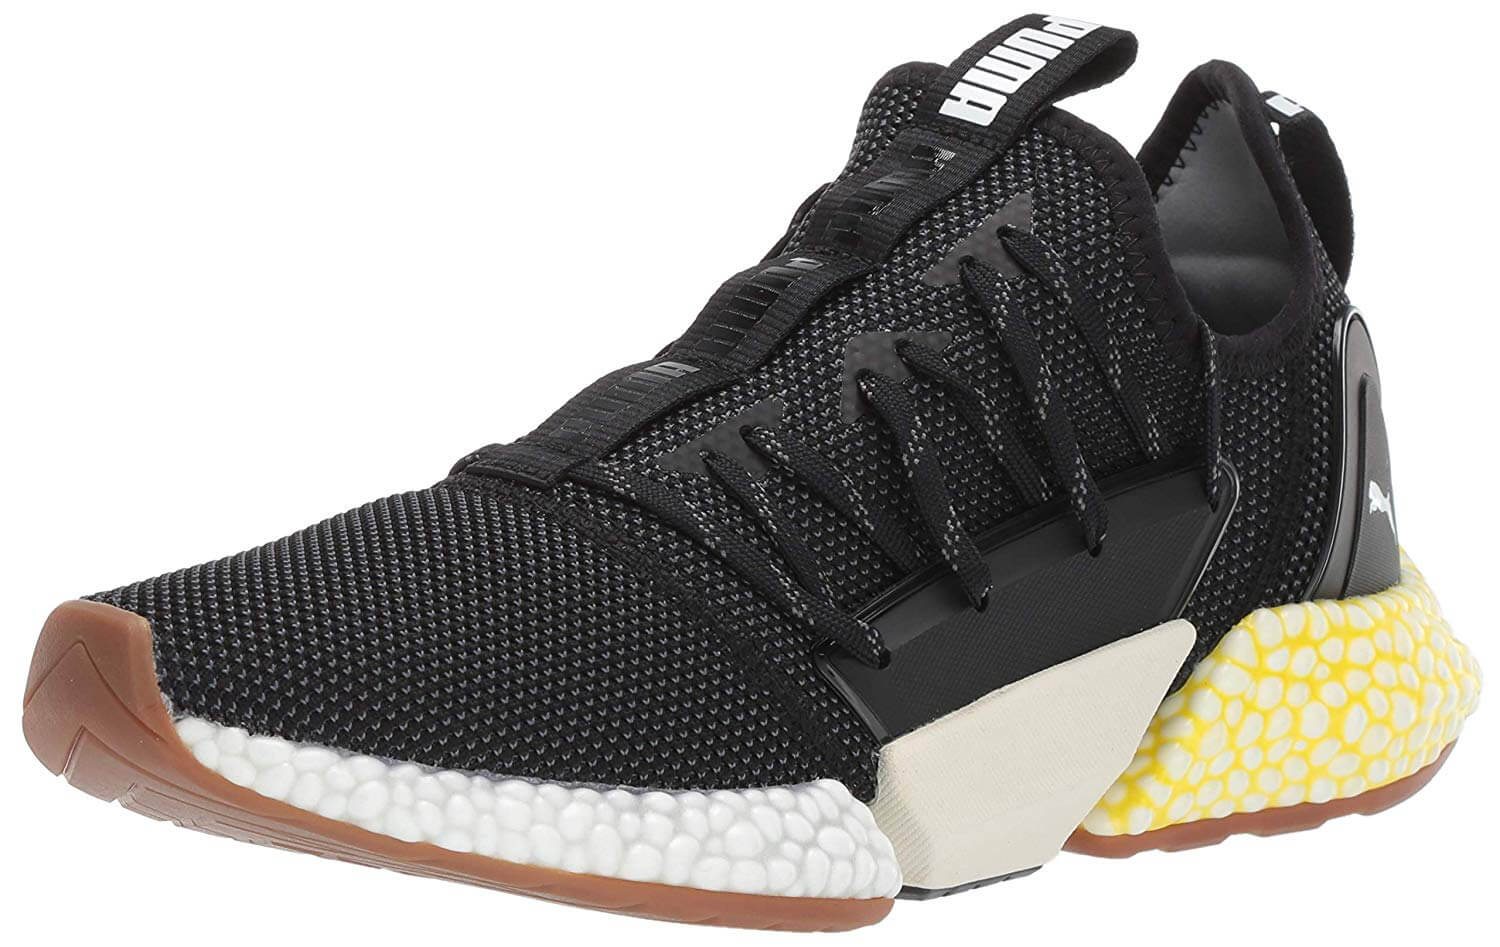 Puma Hybrid Rocket Runner Fully Reviewed for Quality